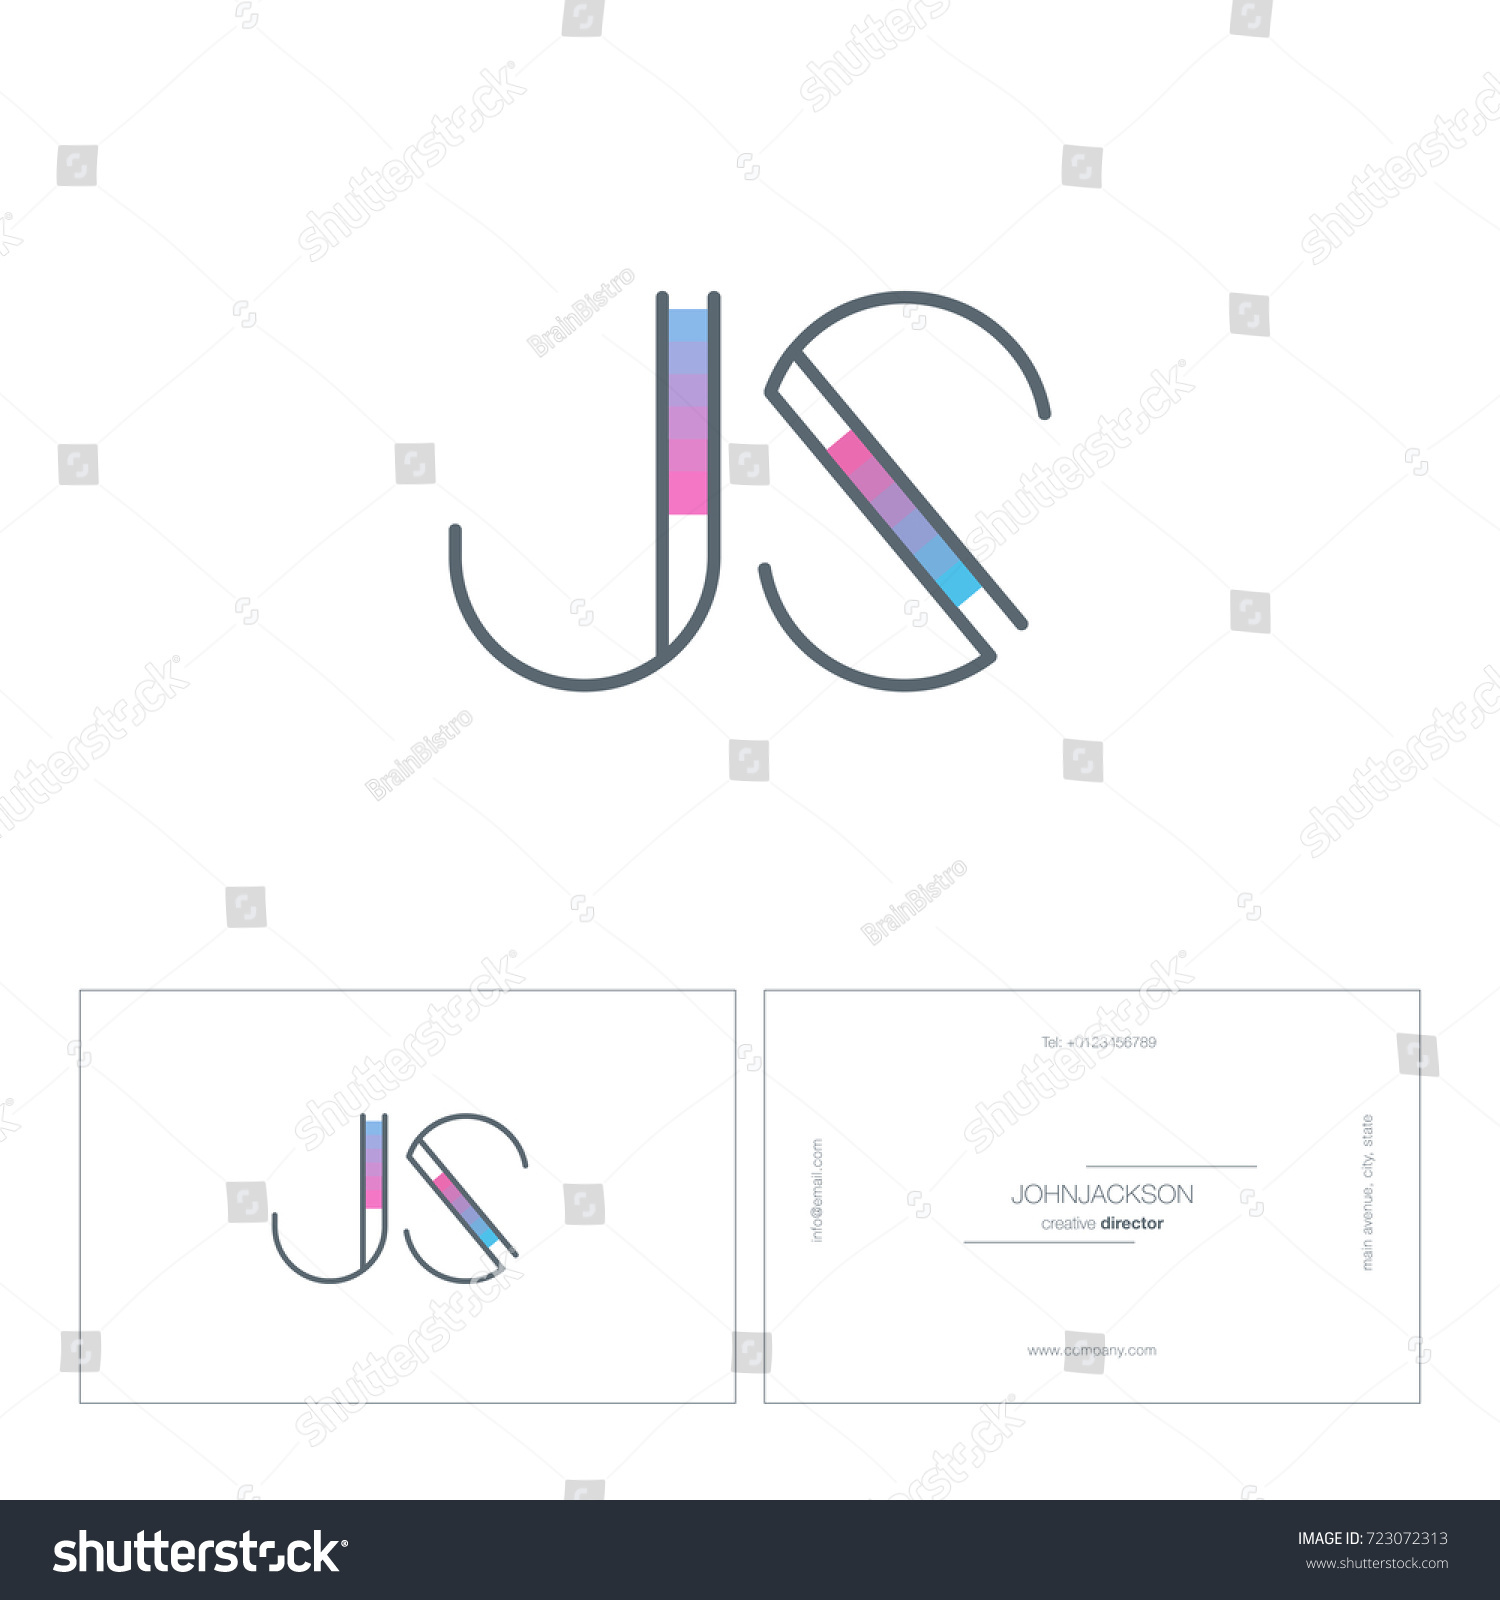 Best of collection of business card pdf template business cards j card template eliolera pronofoot35fo Images